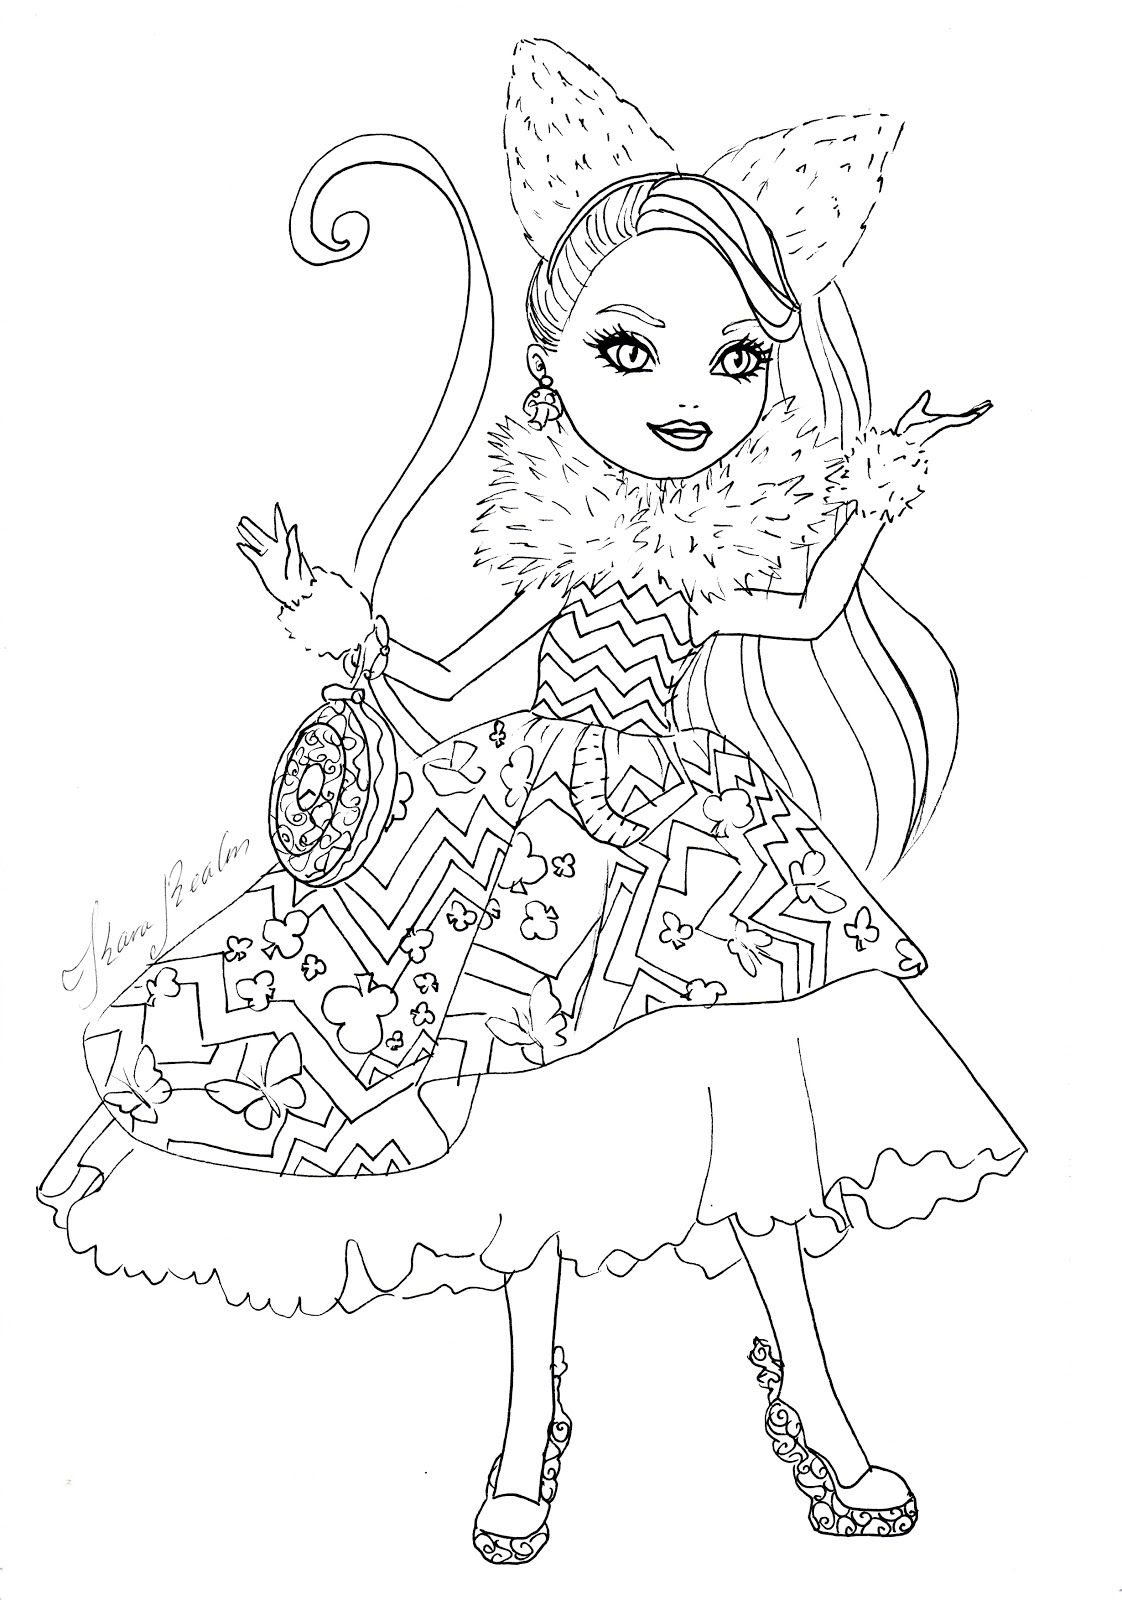 Related Image Ever After HighColoring Pages